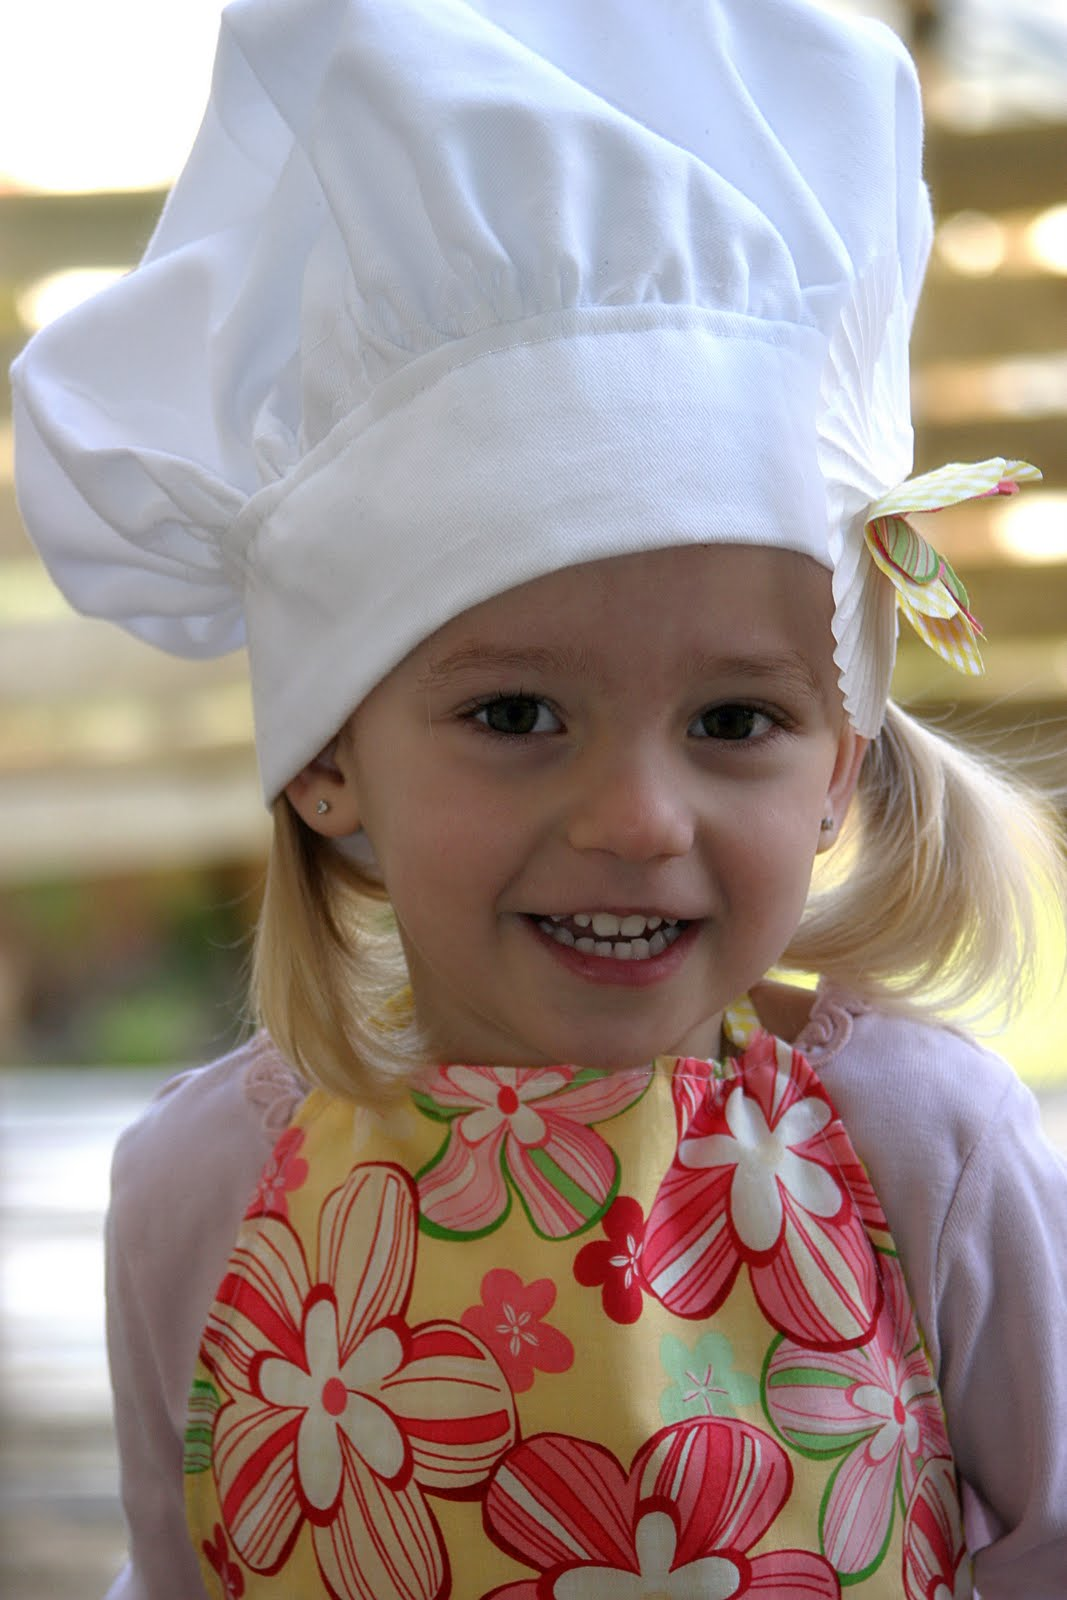 Child's Chef Hat, Apron and Potholder Sewing Pattern | eBay